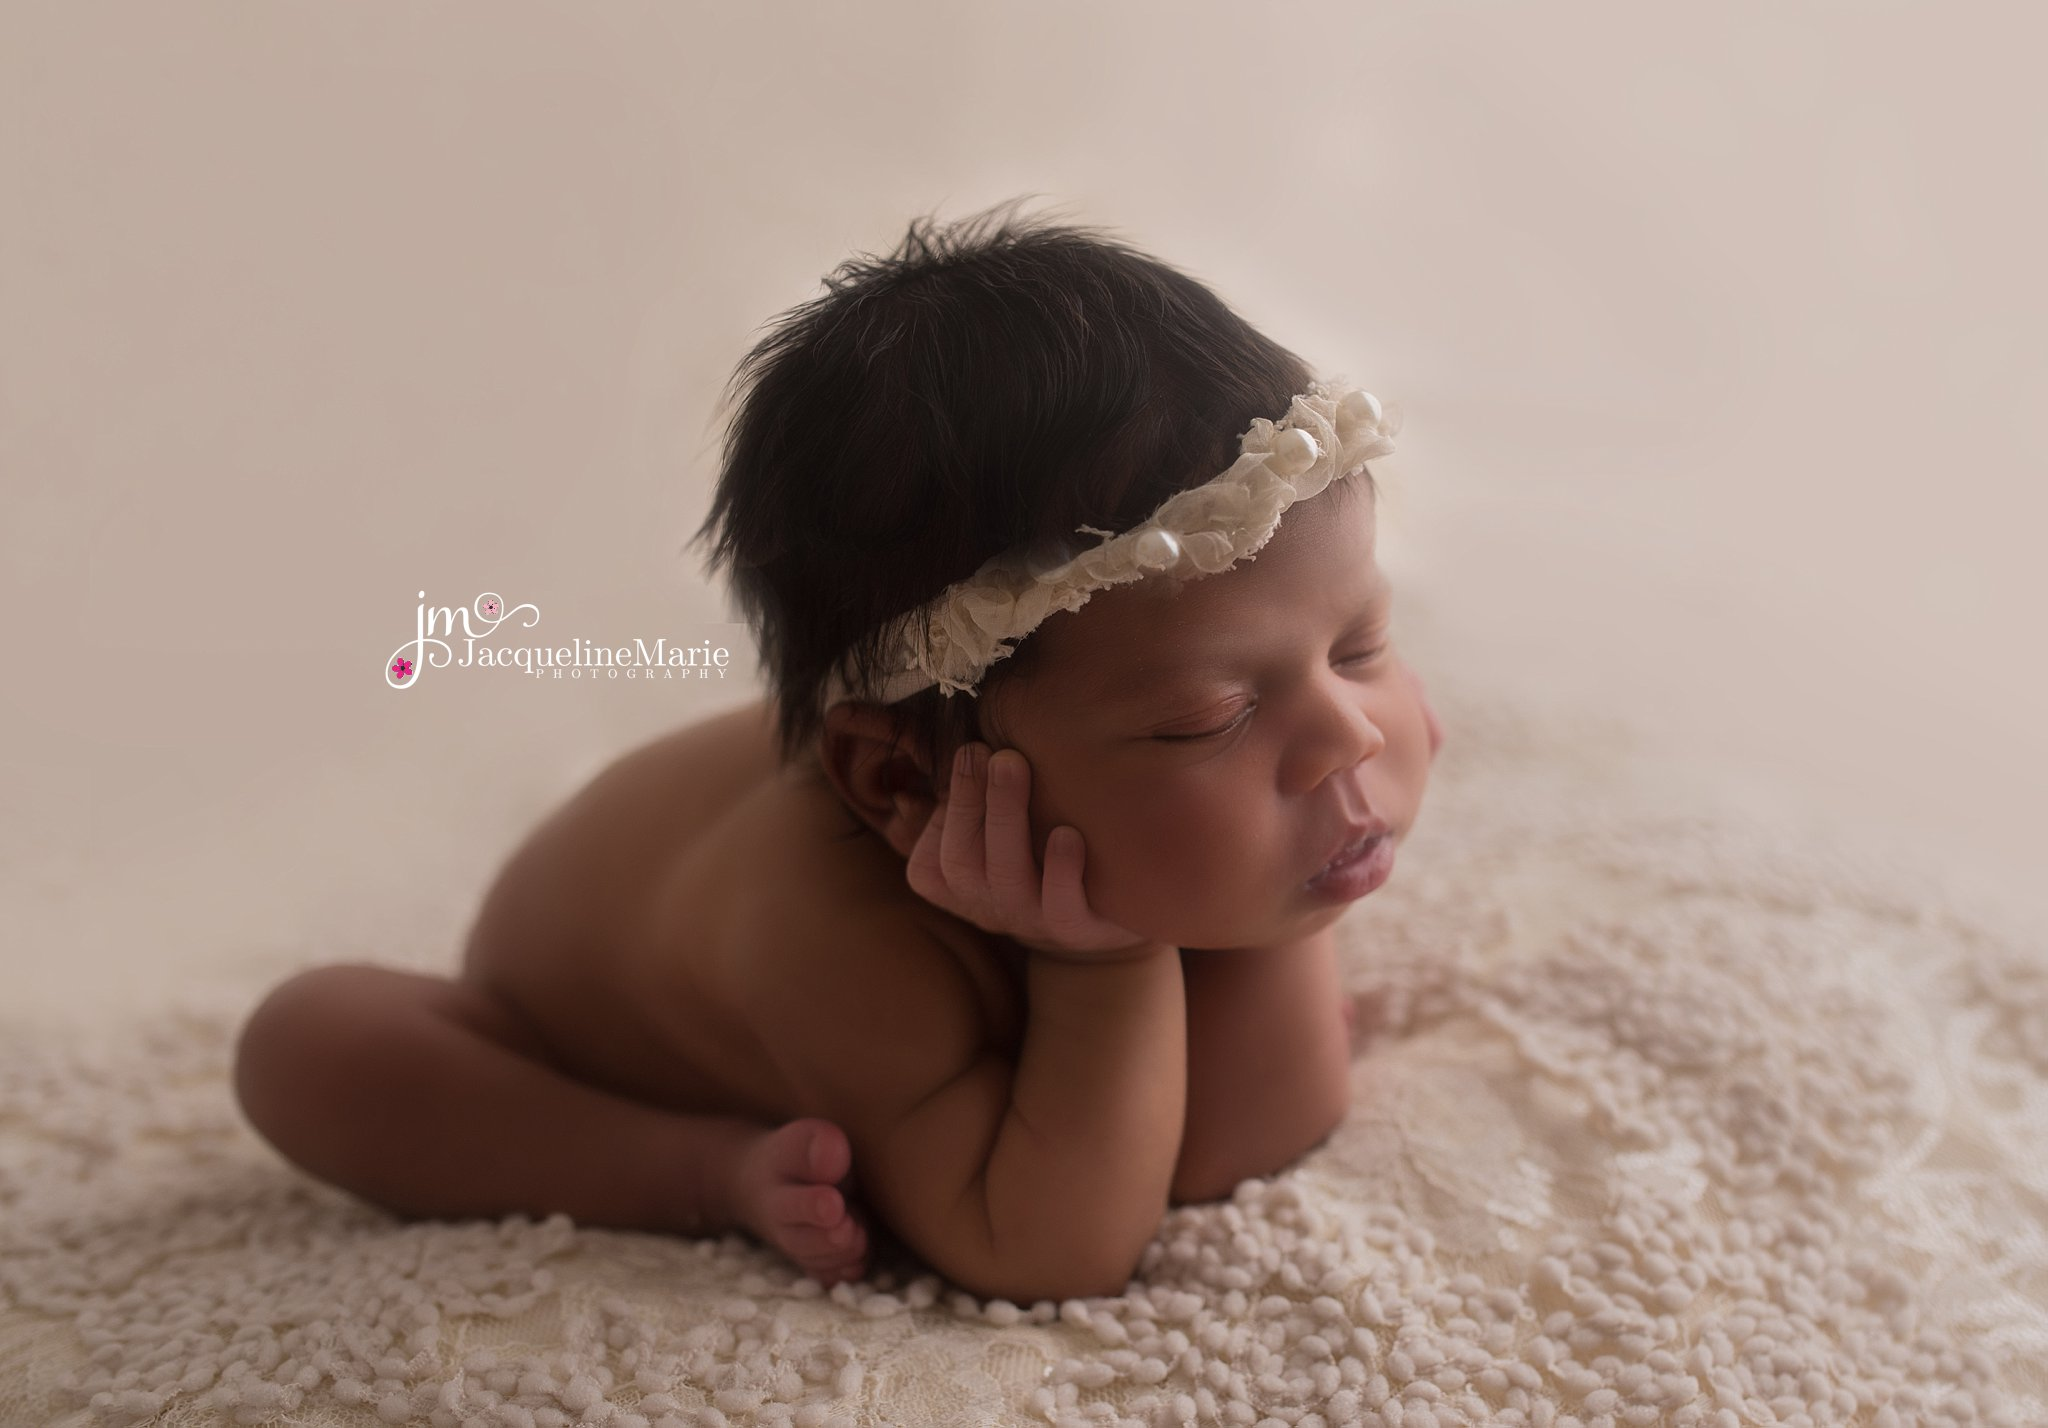 Columbus ohio newborn photographer features baby girl posed with head in hands while wearing cream pearl headband